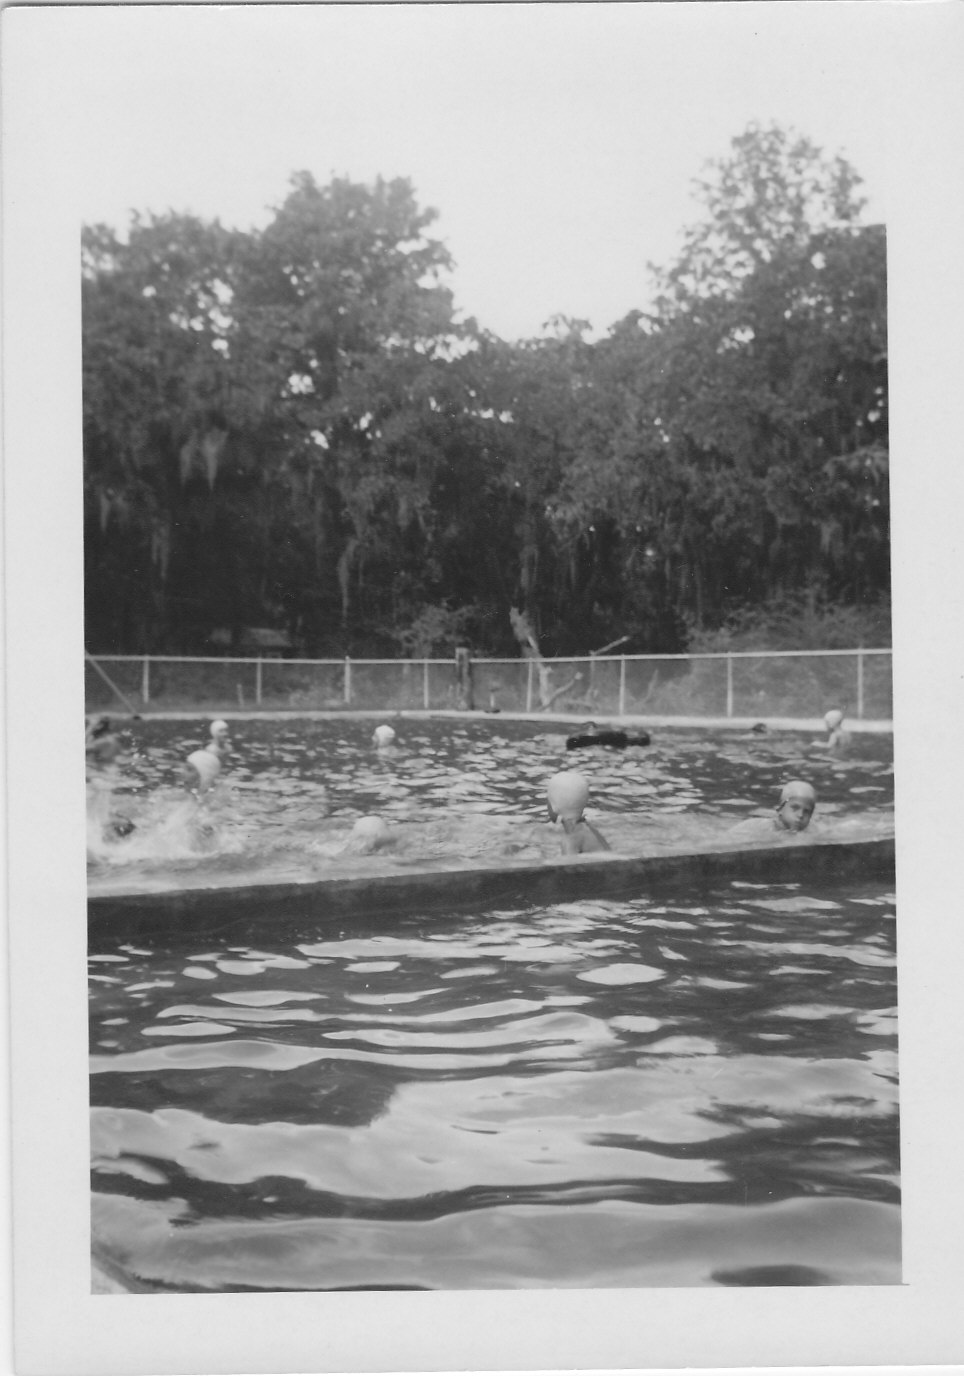 American Legion Swimming Pool in Hempstead